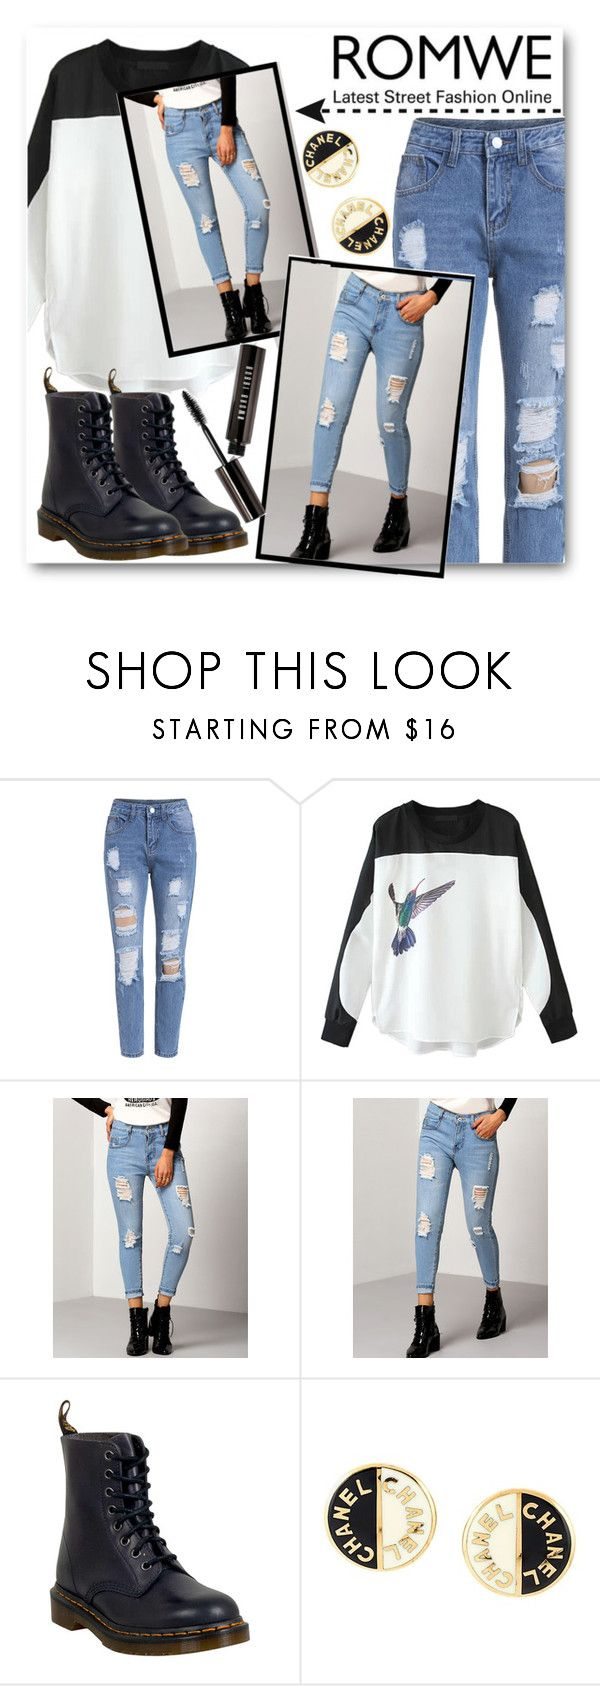 """Riped Jeans Romwe#3"" by kpopmember ❤ liked on Polyvore featuring WithChic, Dr. Martens, Chanel and Bobbi Brown Cosmetics"